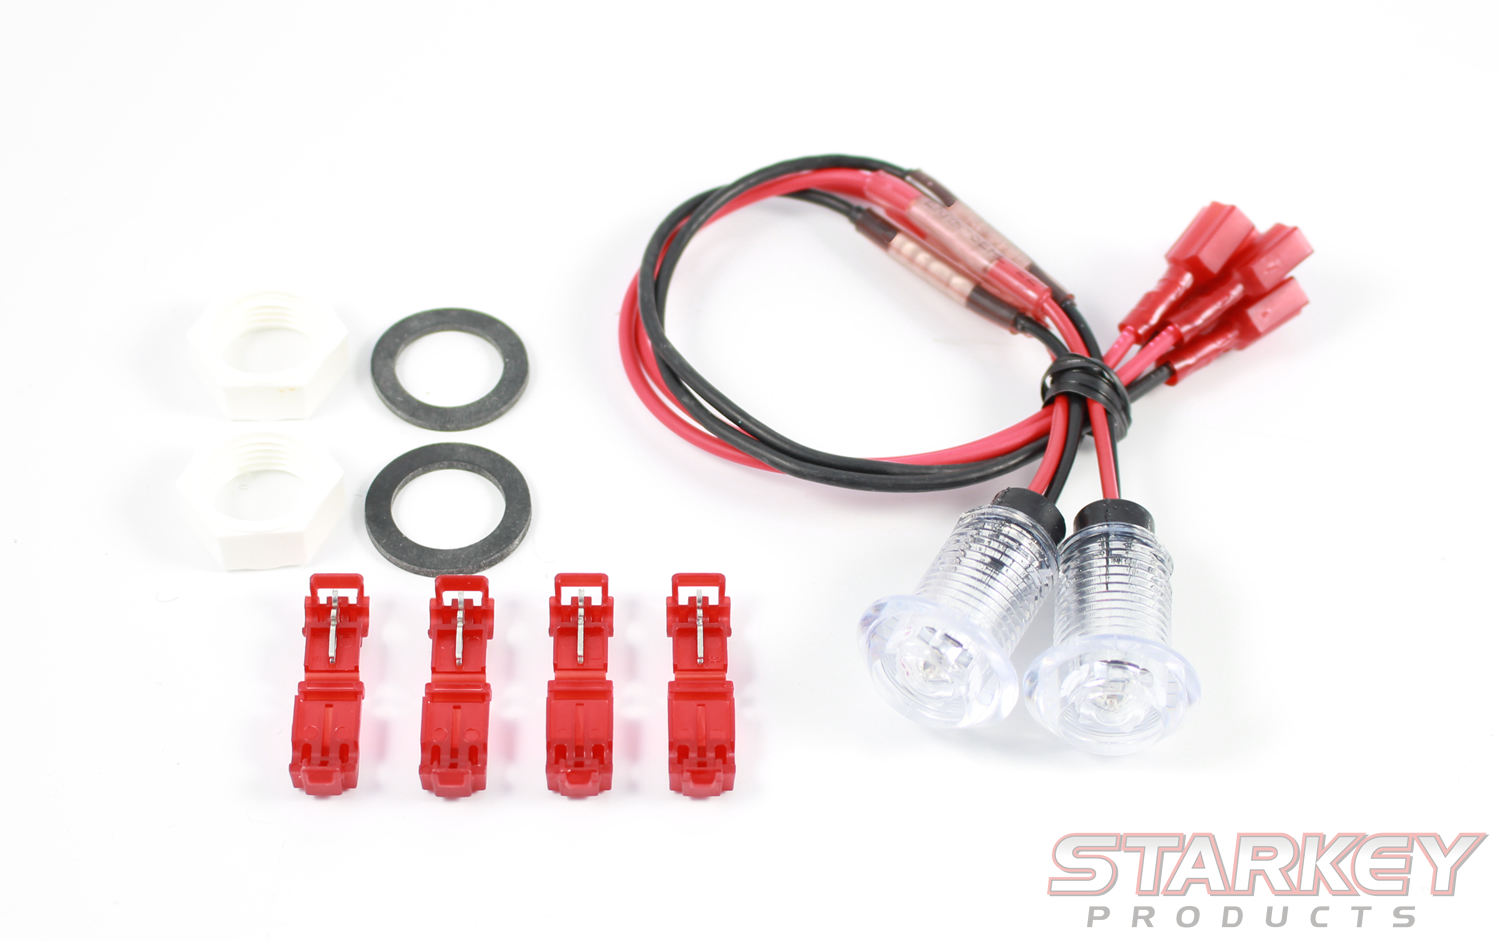 Mustang Led Puddle Lamp Kit Fits All Trims 2013 2014 2015 Silverado Fog Light Wiring Harness Gt Style Lights V6 And Boss 302